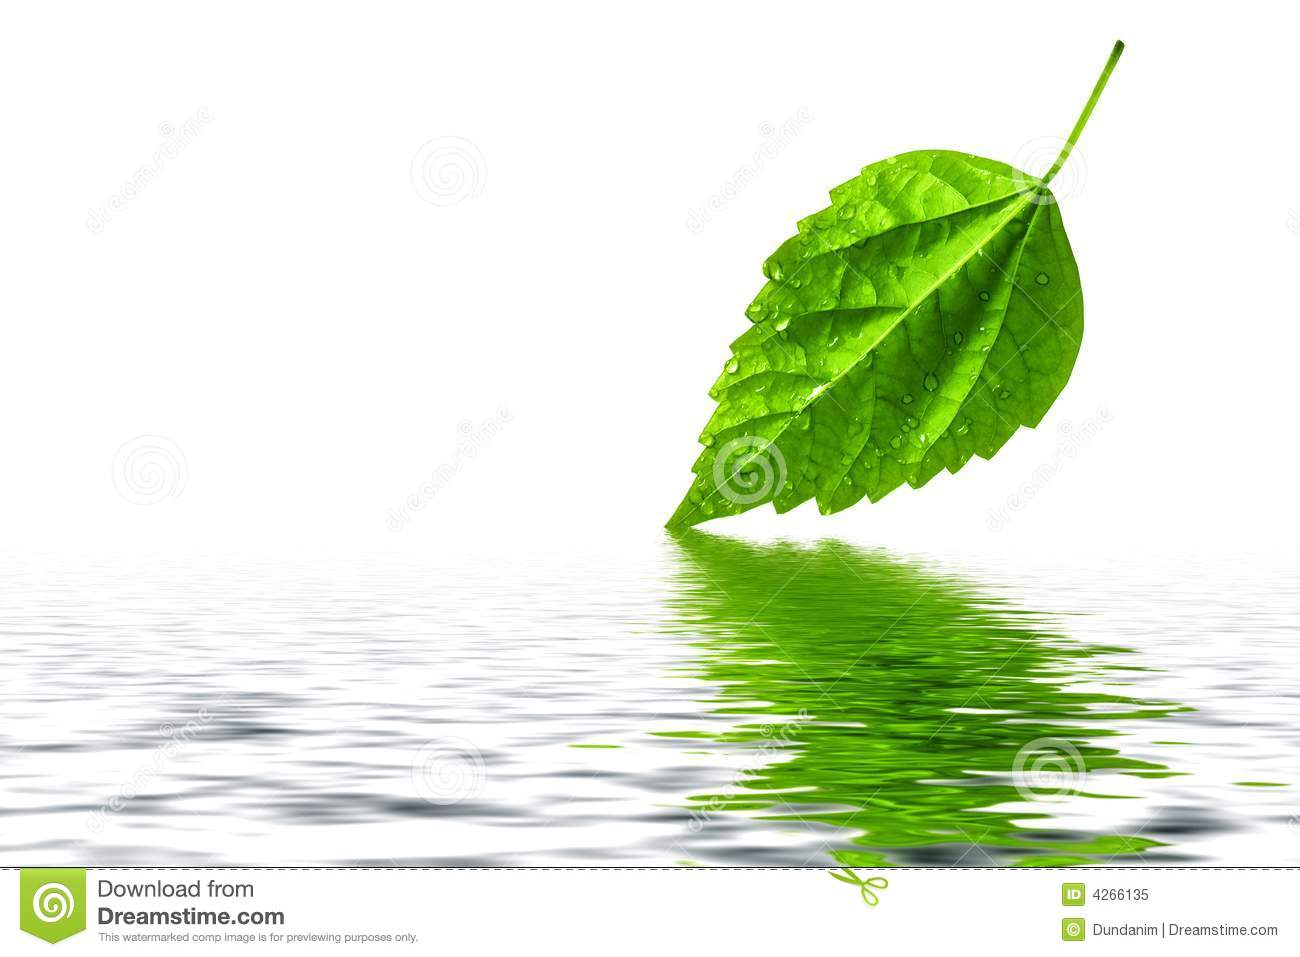 Water reflection clipart #12